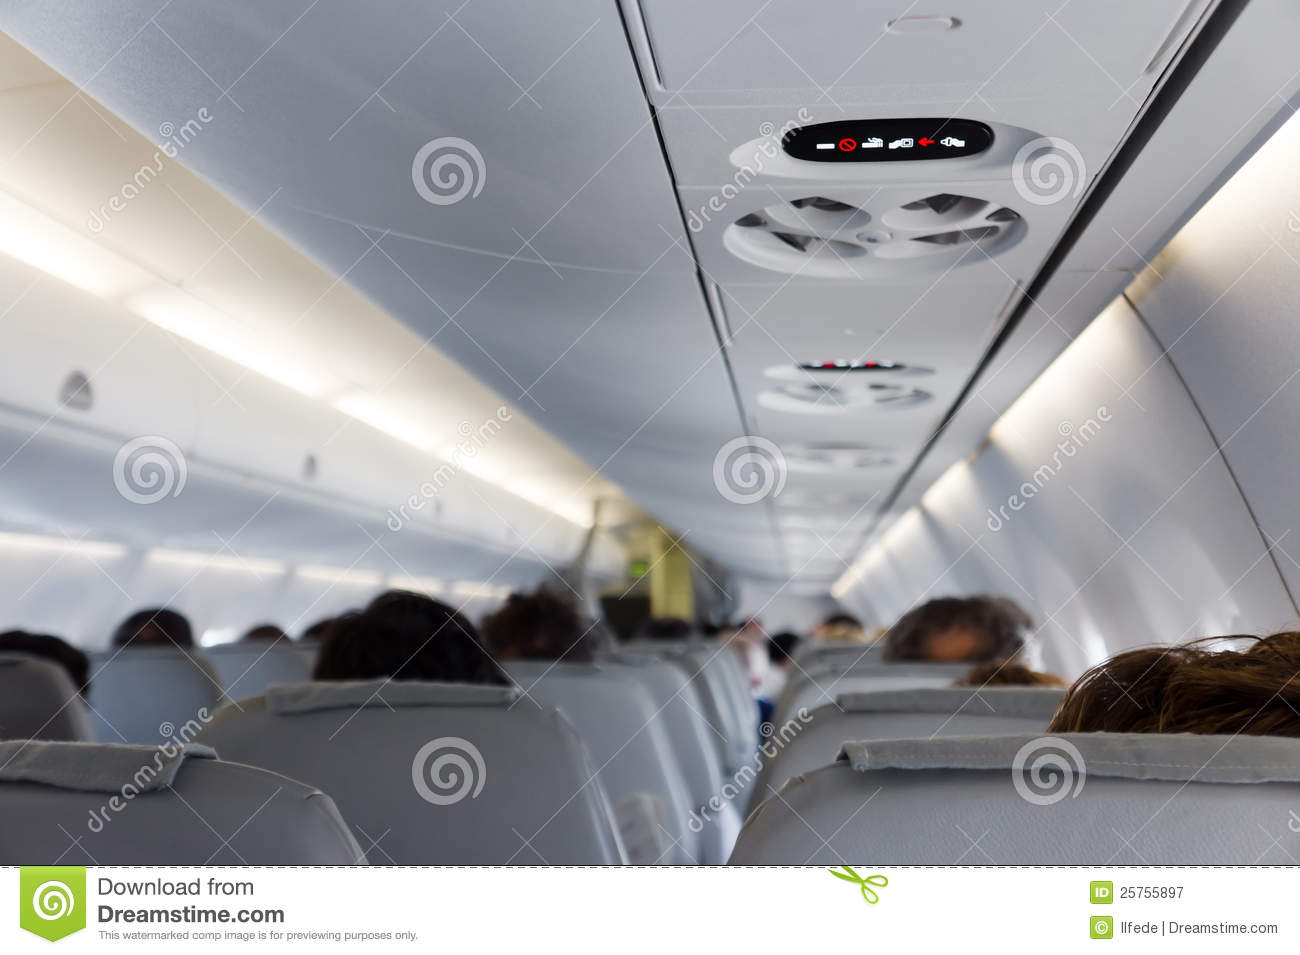 Int rieur d 39 avion de passager photographie stock libre de for Avion jetairfly interieur